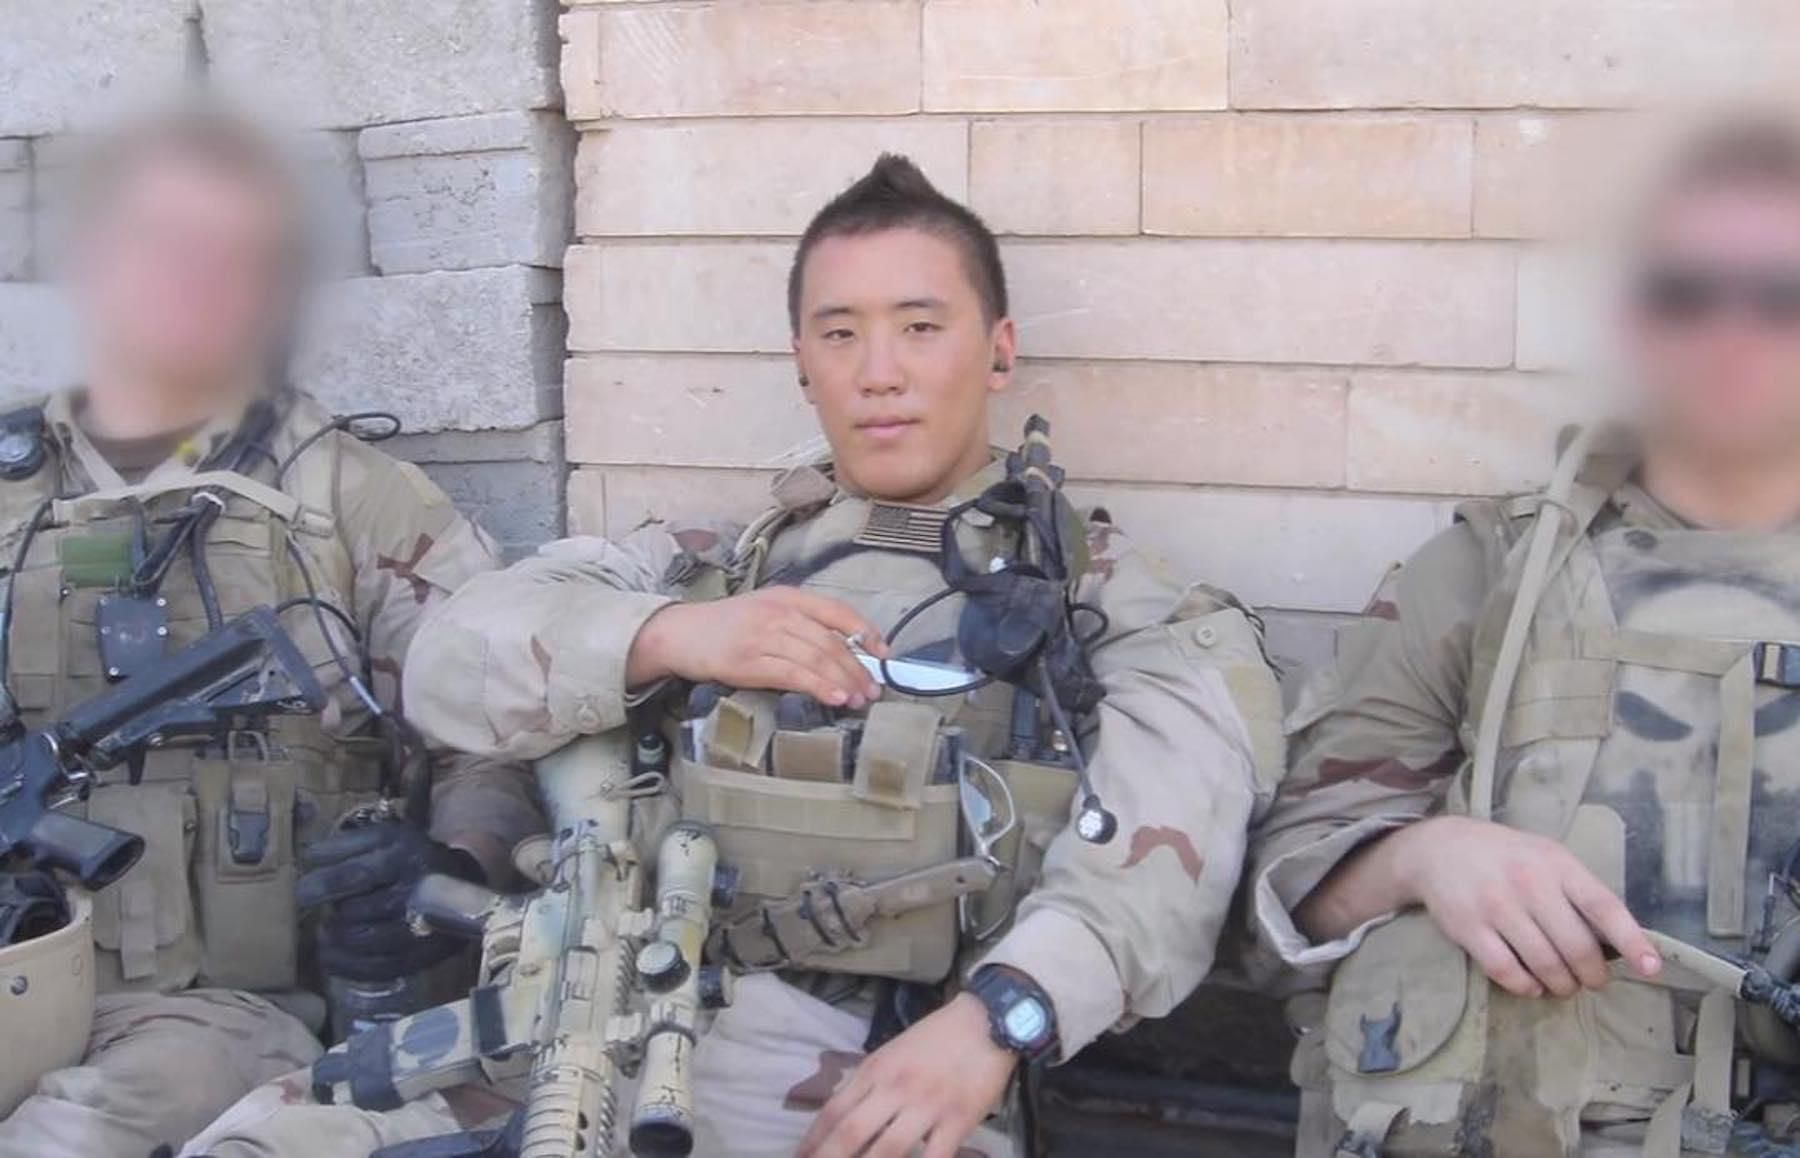 Former navy seal jonny kim completed 100 combat missions